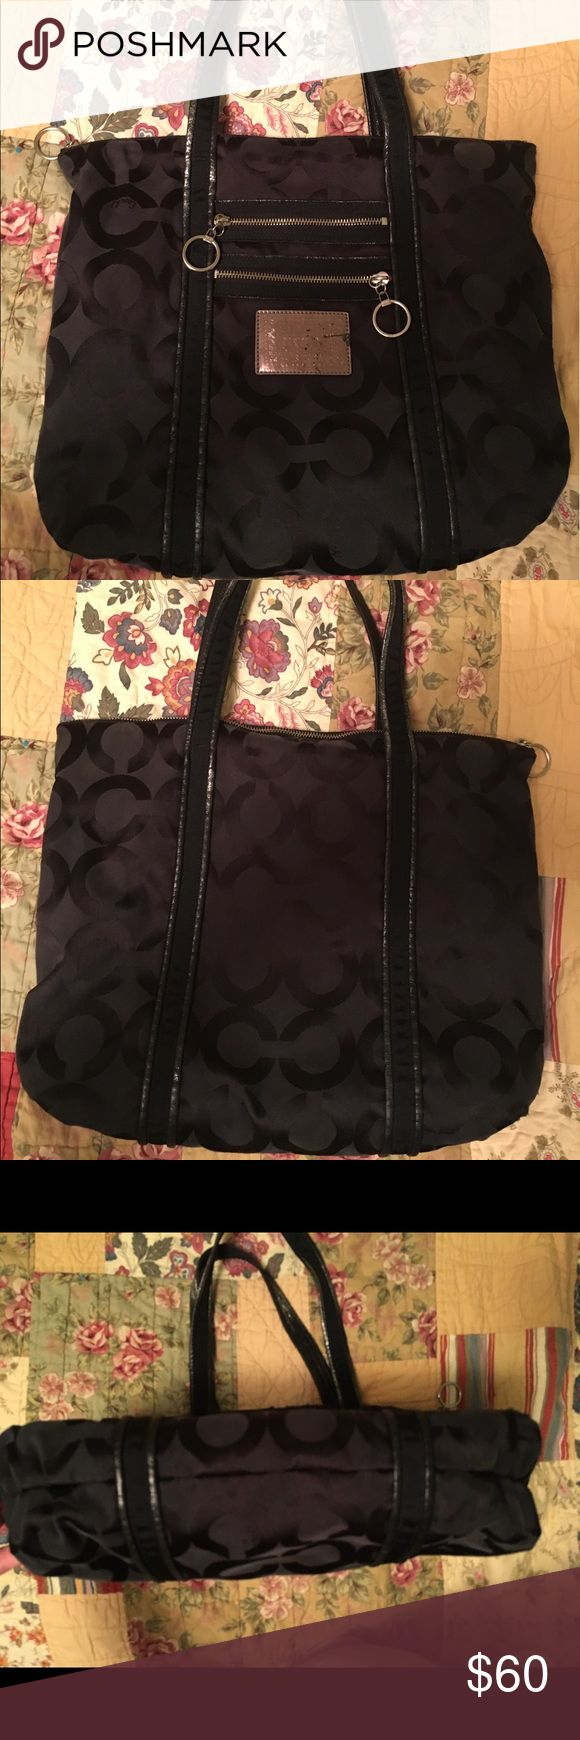 Large Black Coach Tote Bag has been used but still in great shape. Shows some wear on top and around front label as pictured. Inside in excellent condition. Coach Bags